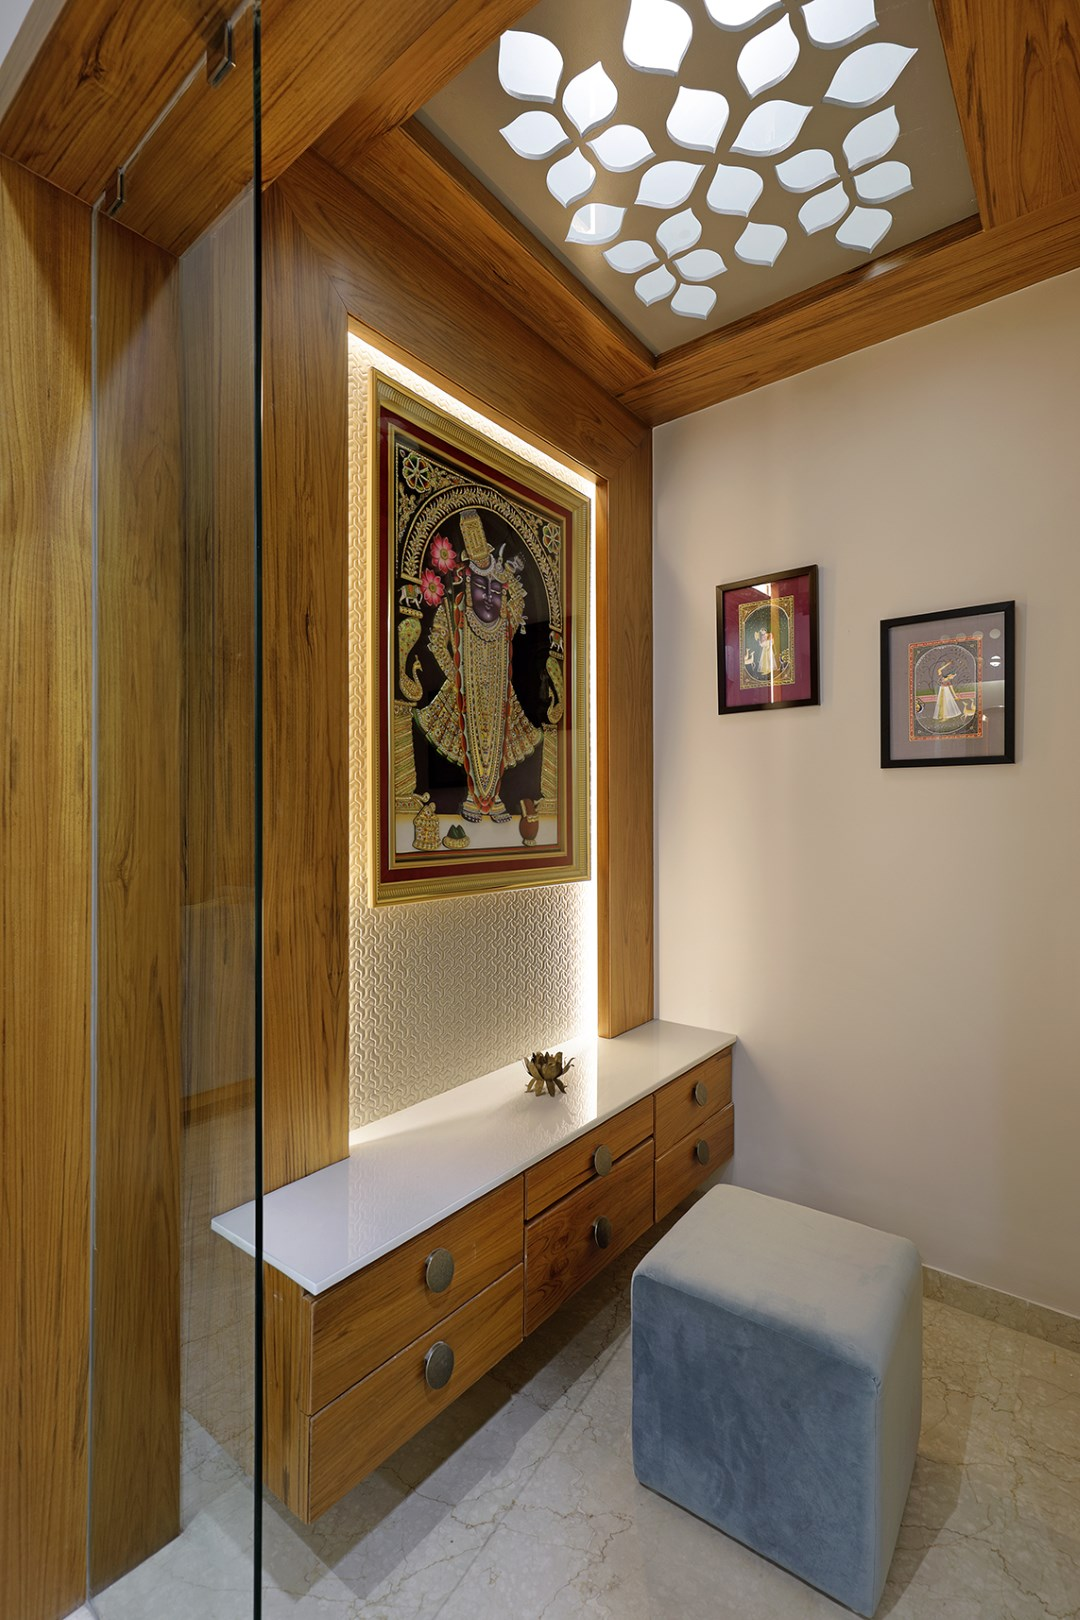 Puja Room Design: Floral Pattern Inspires Apartment Interiors